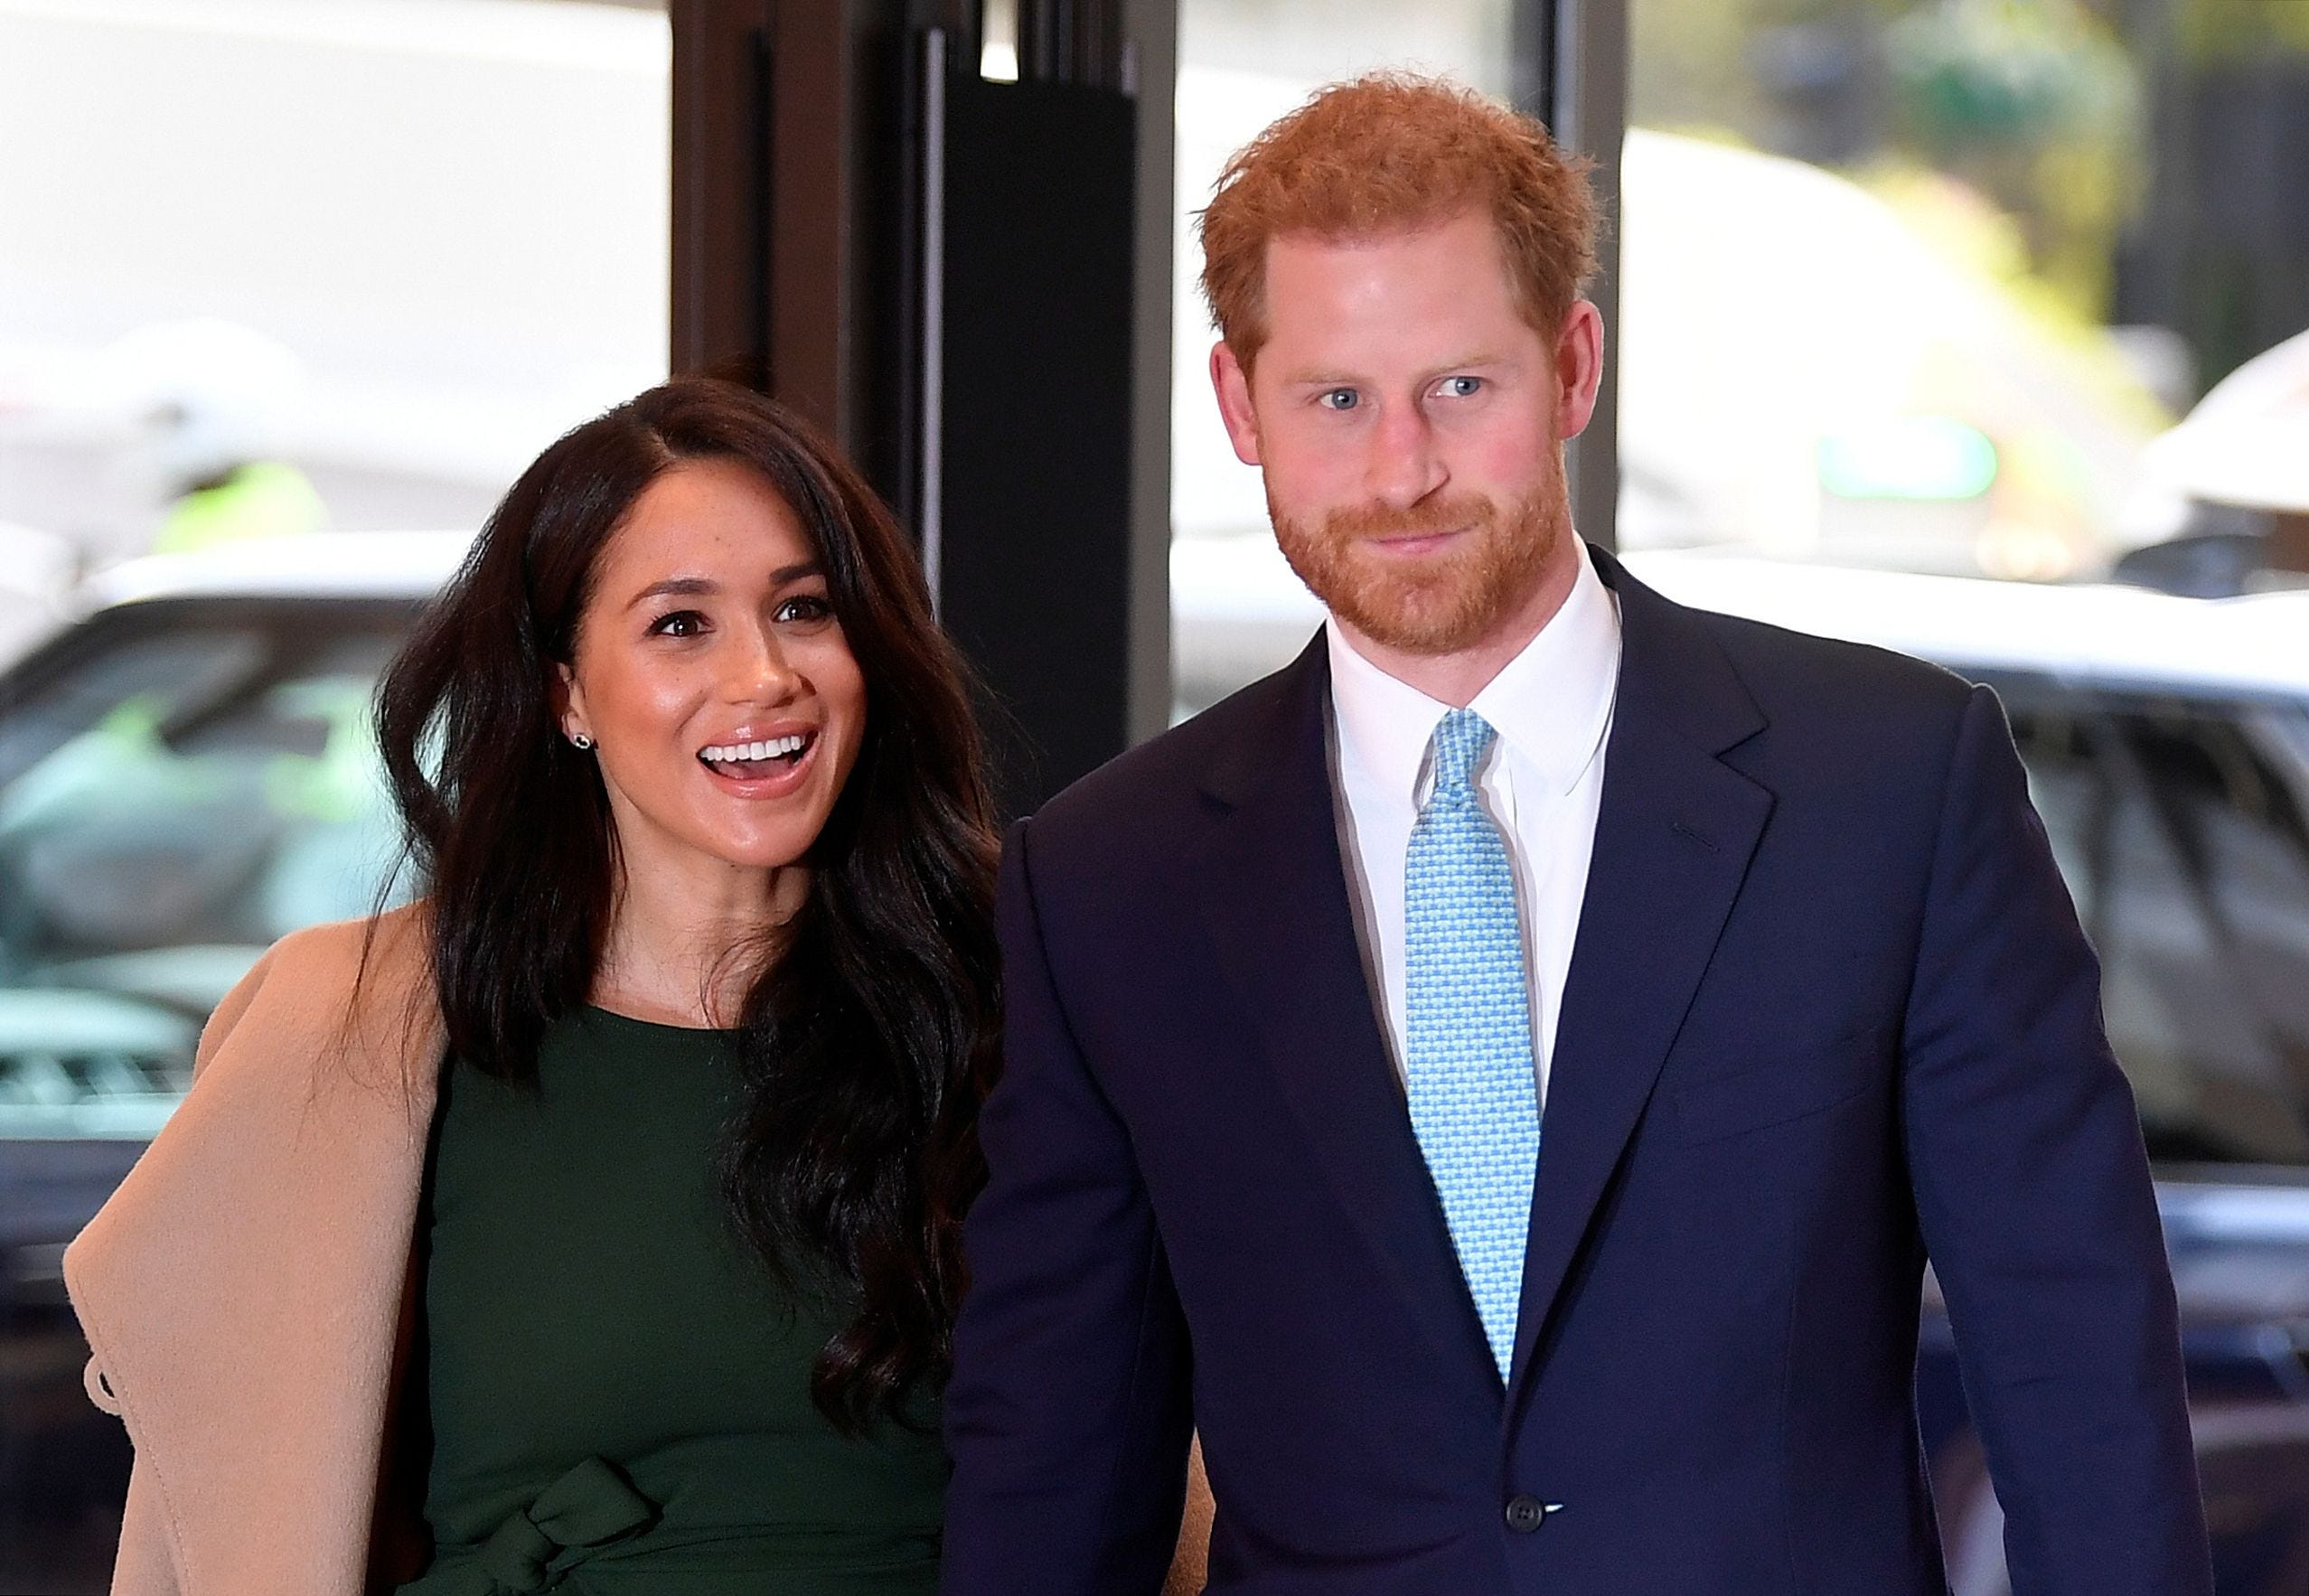 Prince Harry gets candid about his relationship with Prince William, moving to Africa